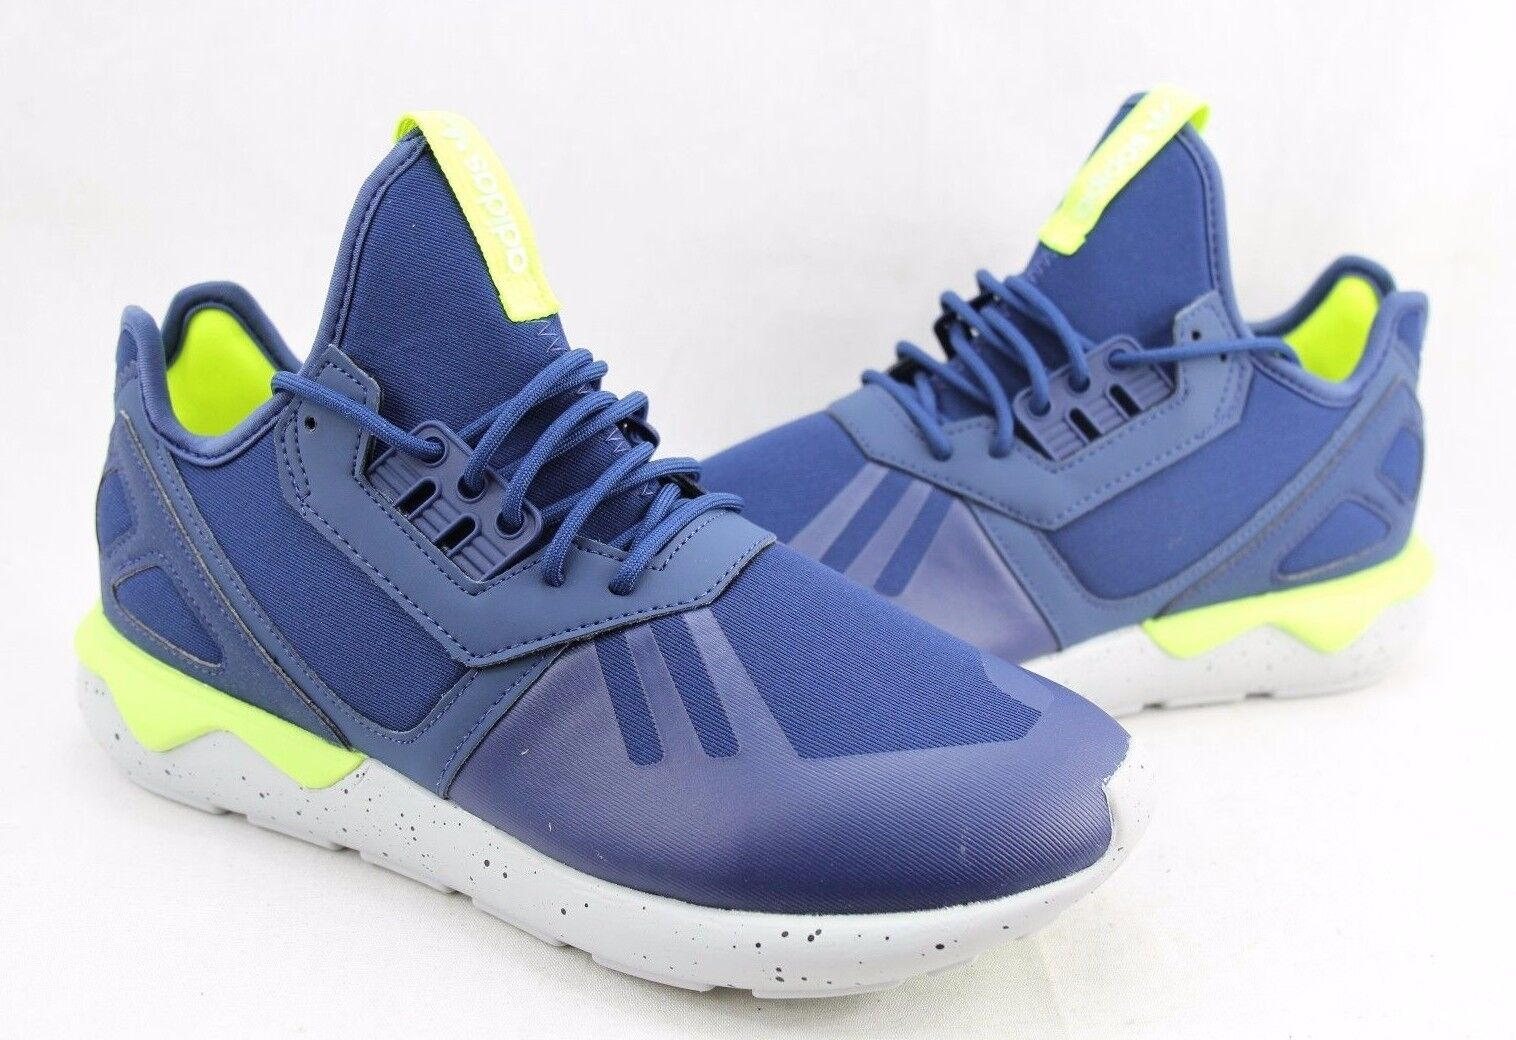 Adidas Mens Tubular Runner shoes bluee  Light Grey AQ8389 Size 8-10